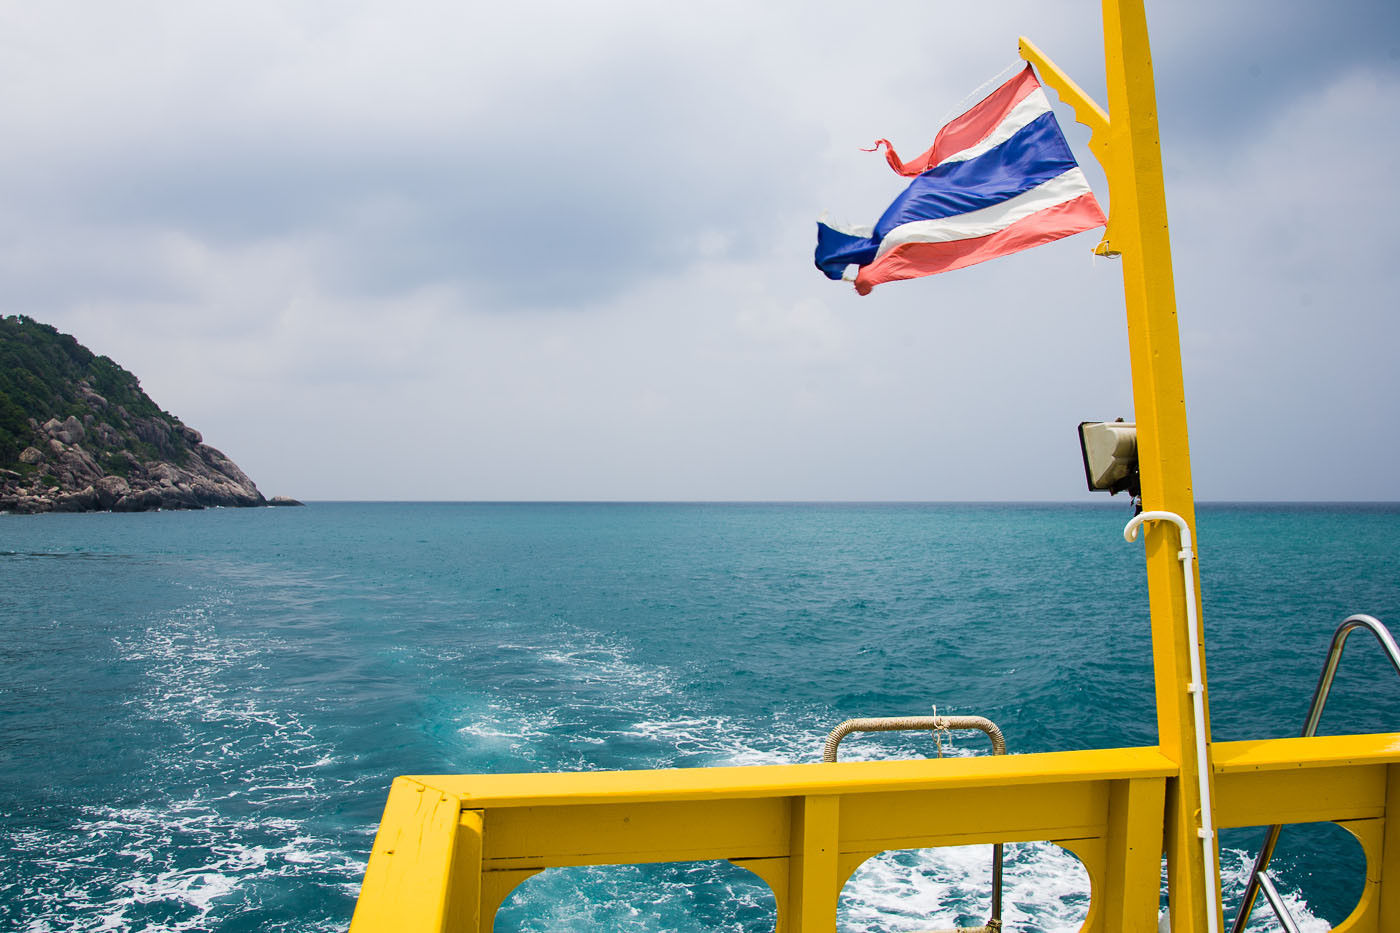 Stern of dive boat and flag near Koh Tao, Thailand